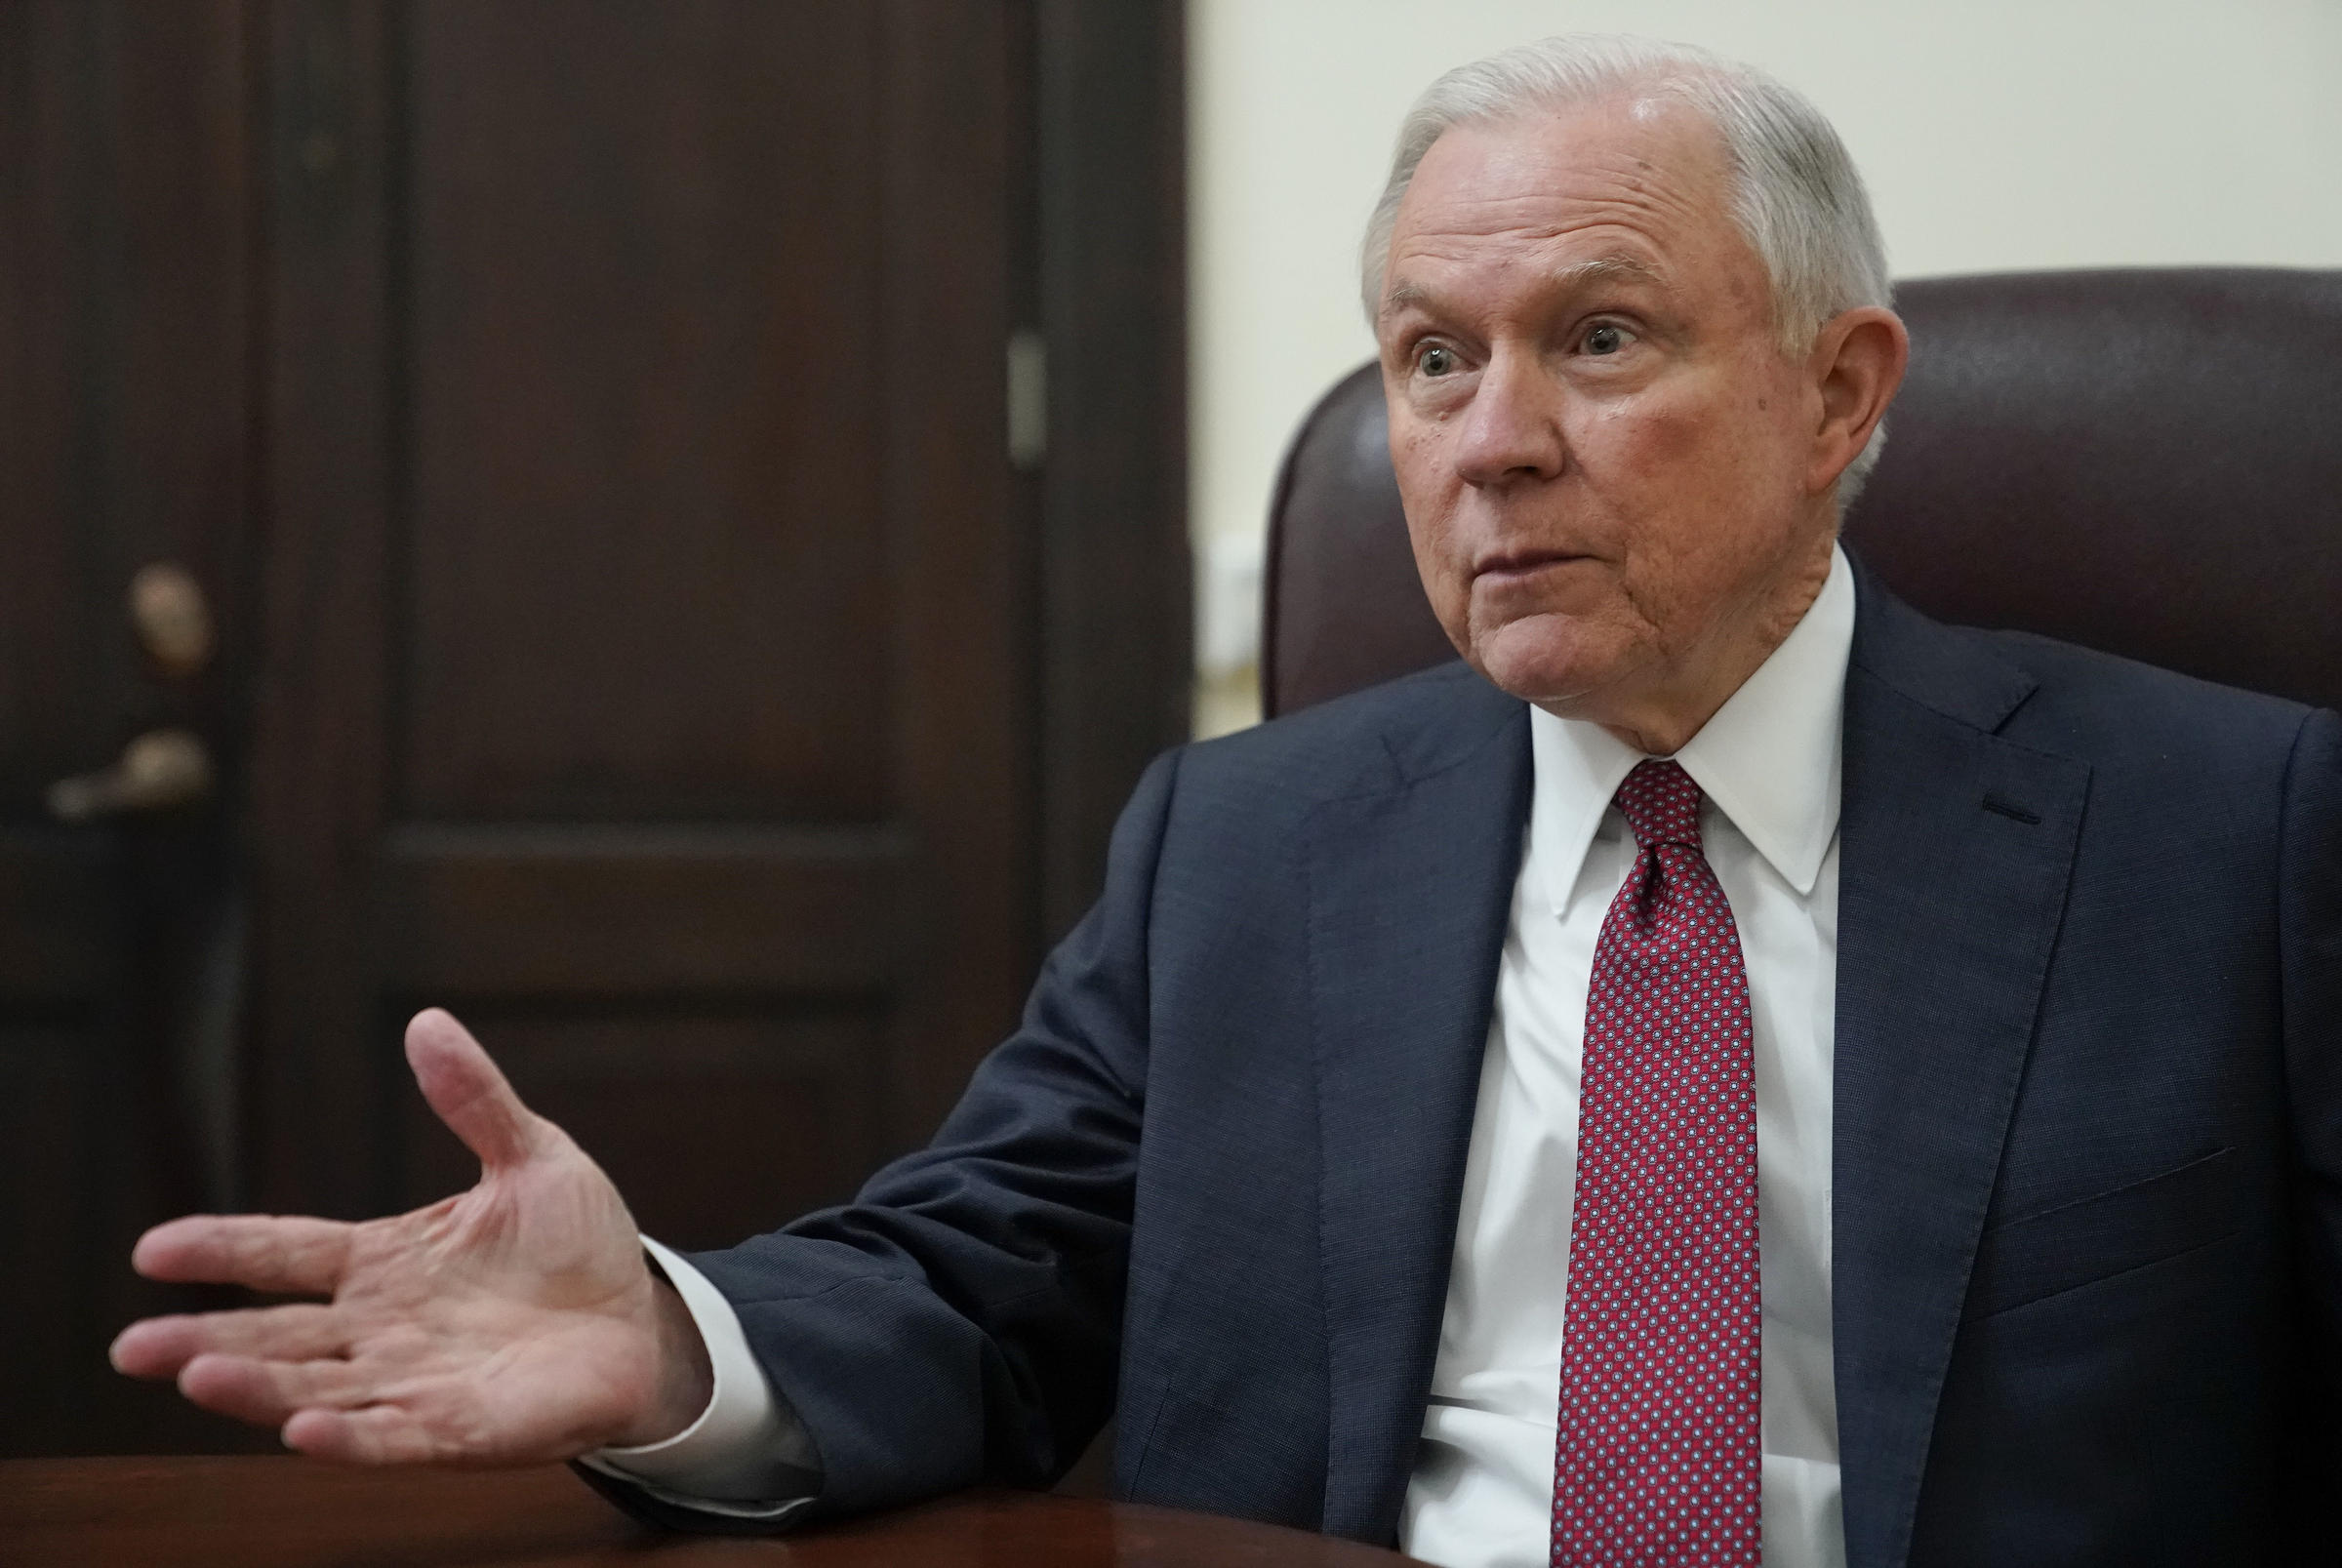 Jeff Sessions Says DOJ Could Force Media to Give up Sources